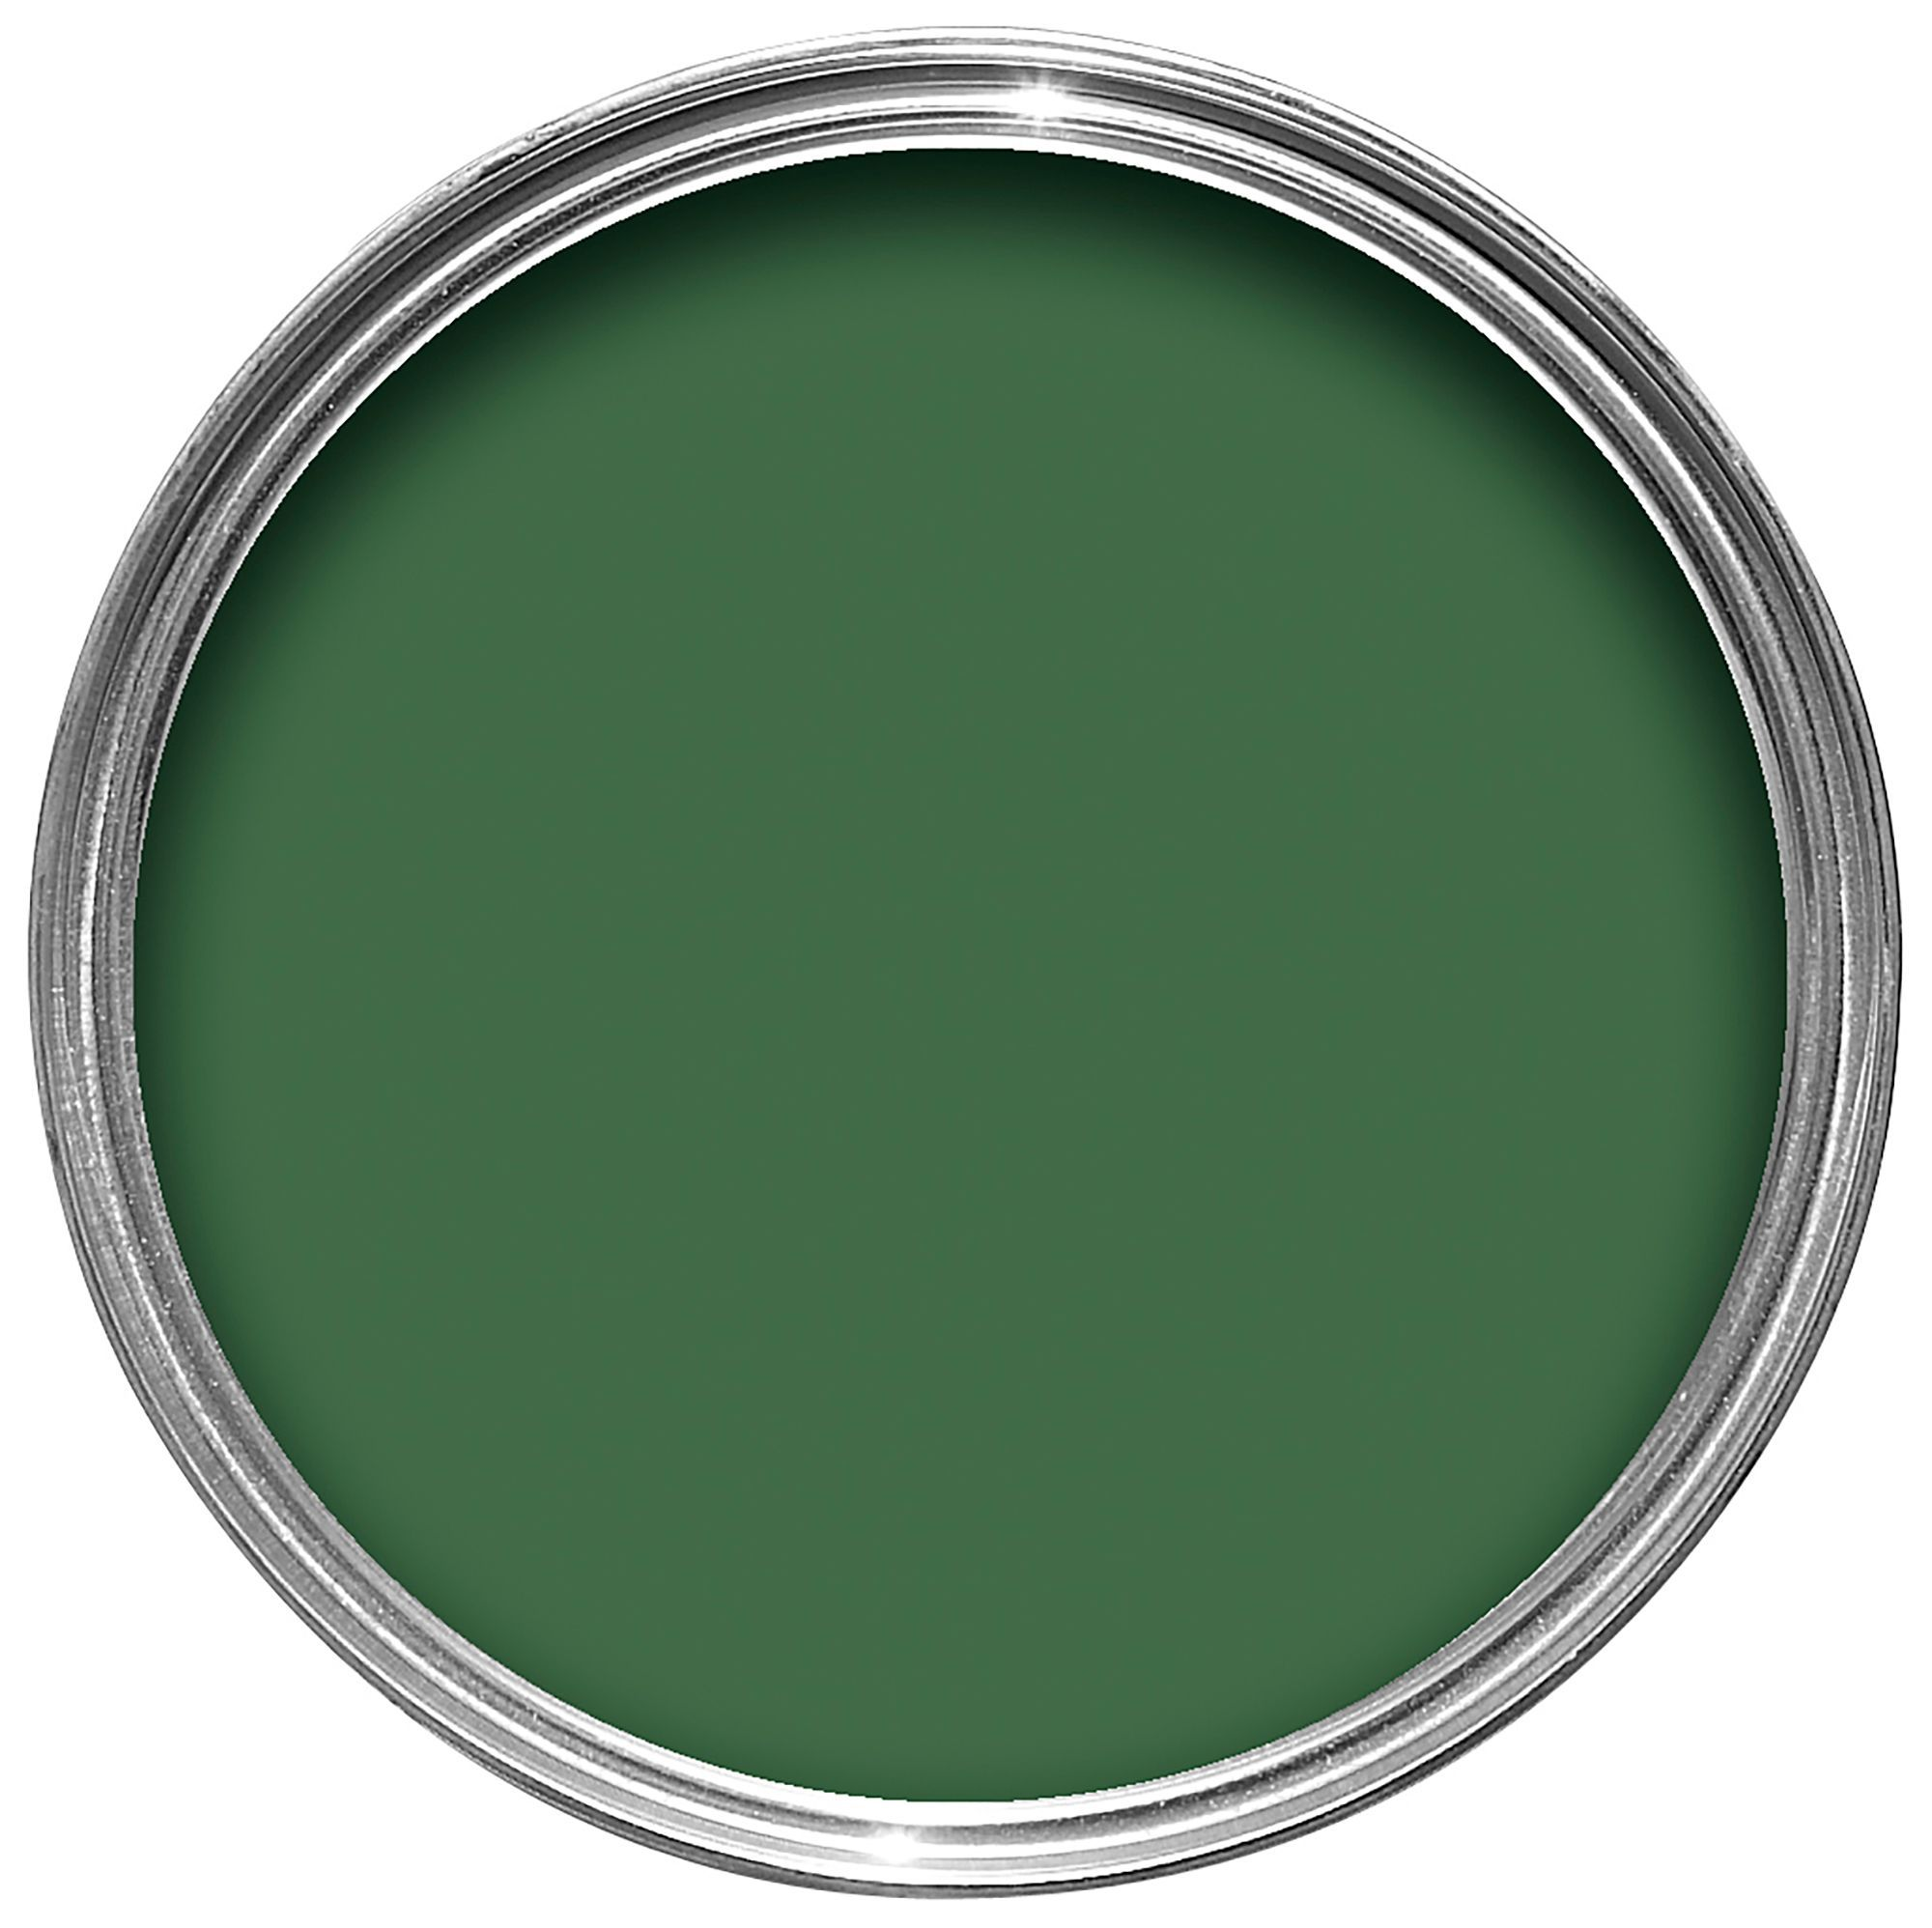 Dulux weathershield external buckingham green gloss paint 2 5l departments diy at b q - Dulux exterior gloss paint style ...